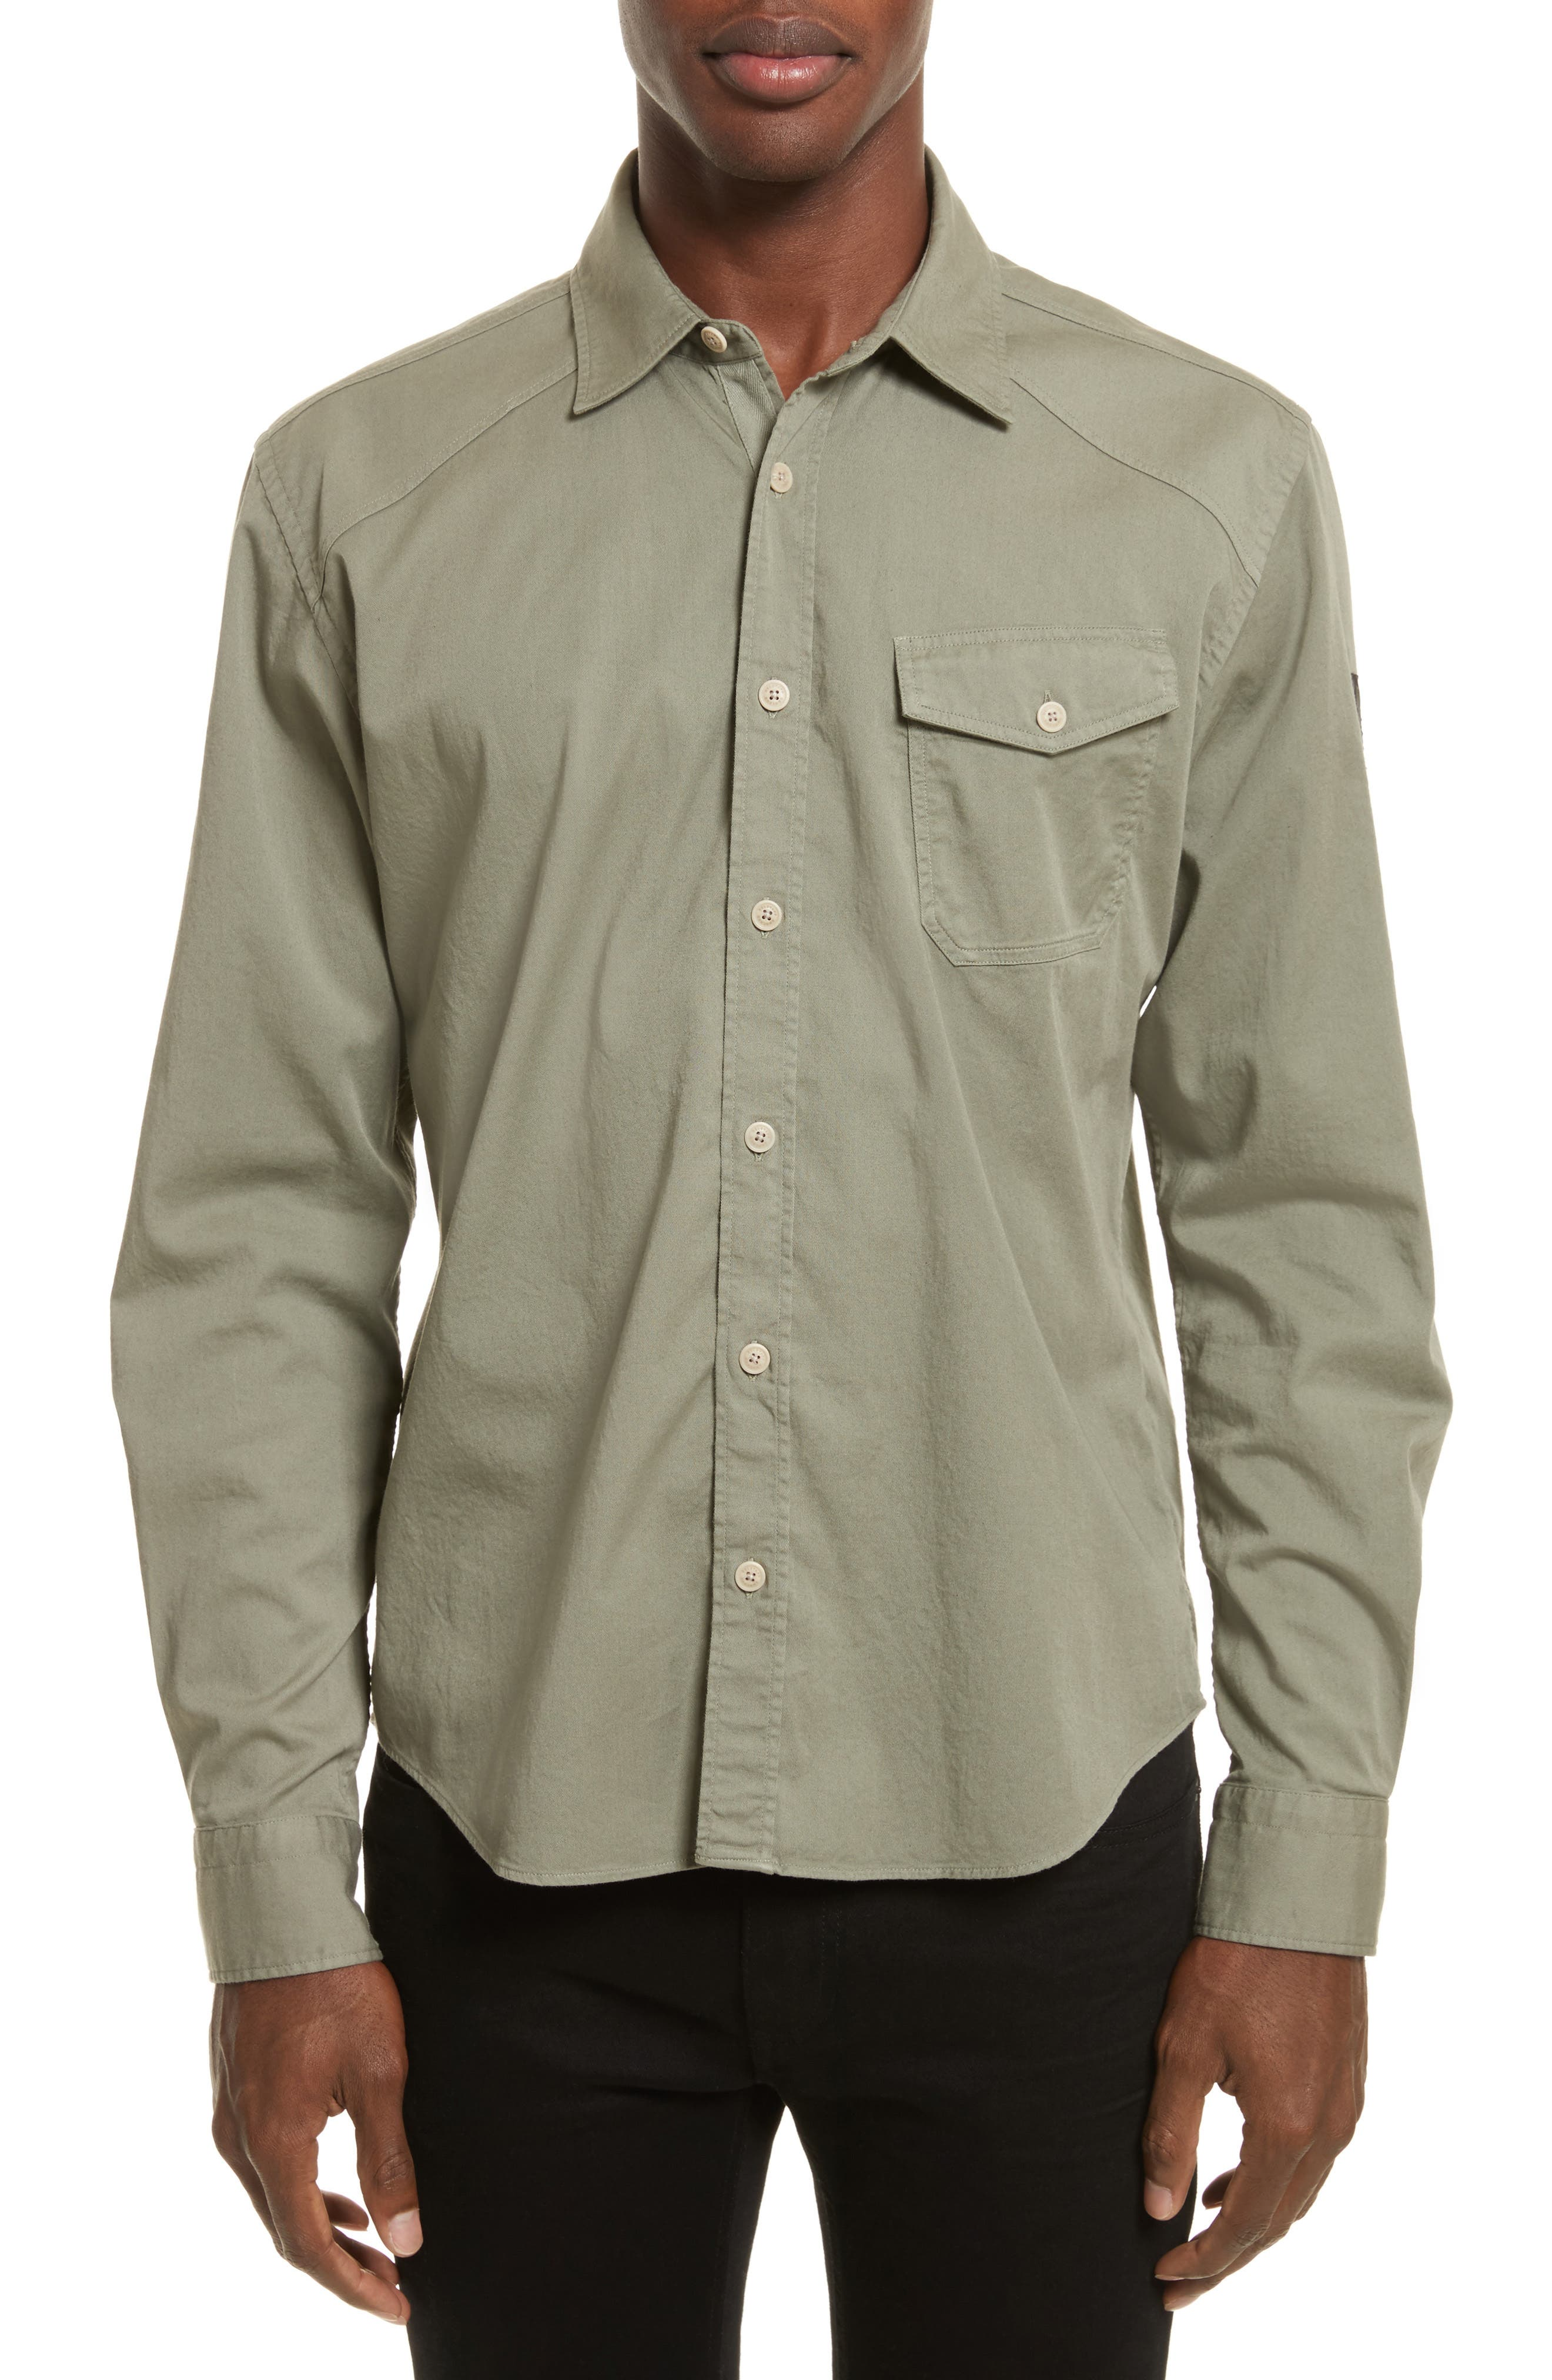 Steadway Extra Slim Fit Sport Shirt,                         Main,                         color,